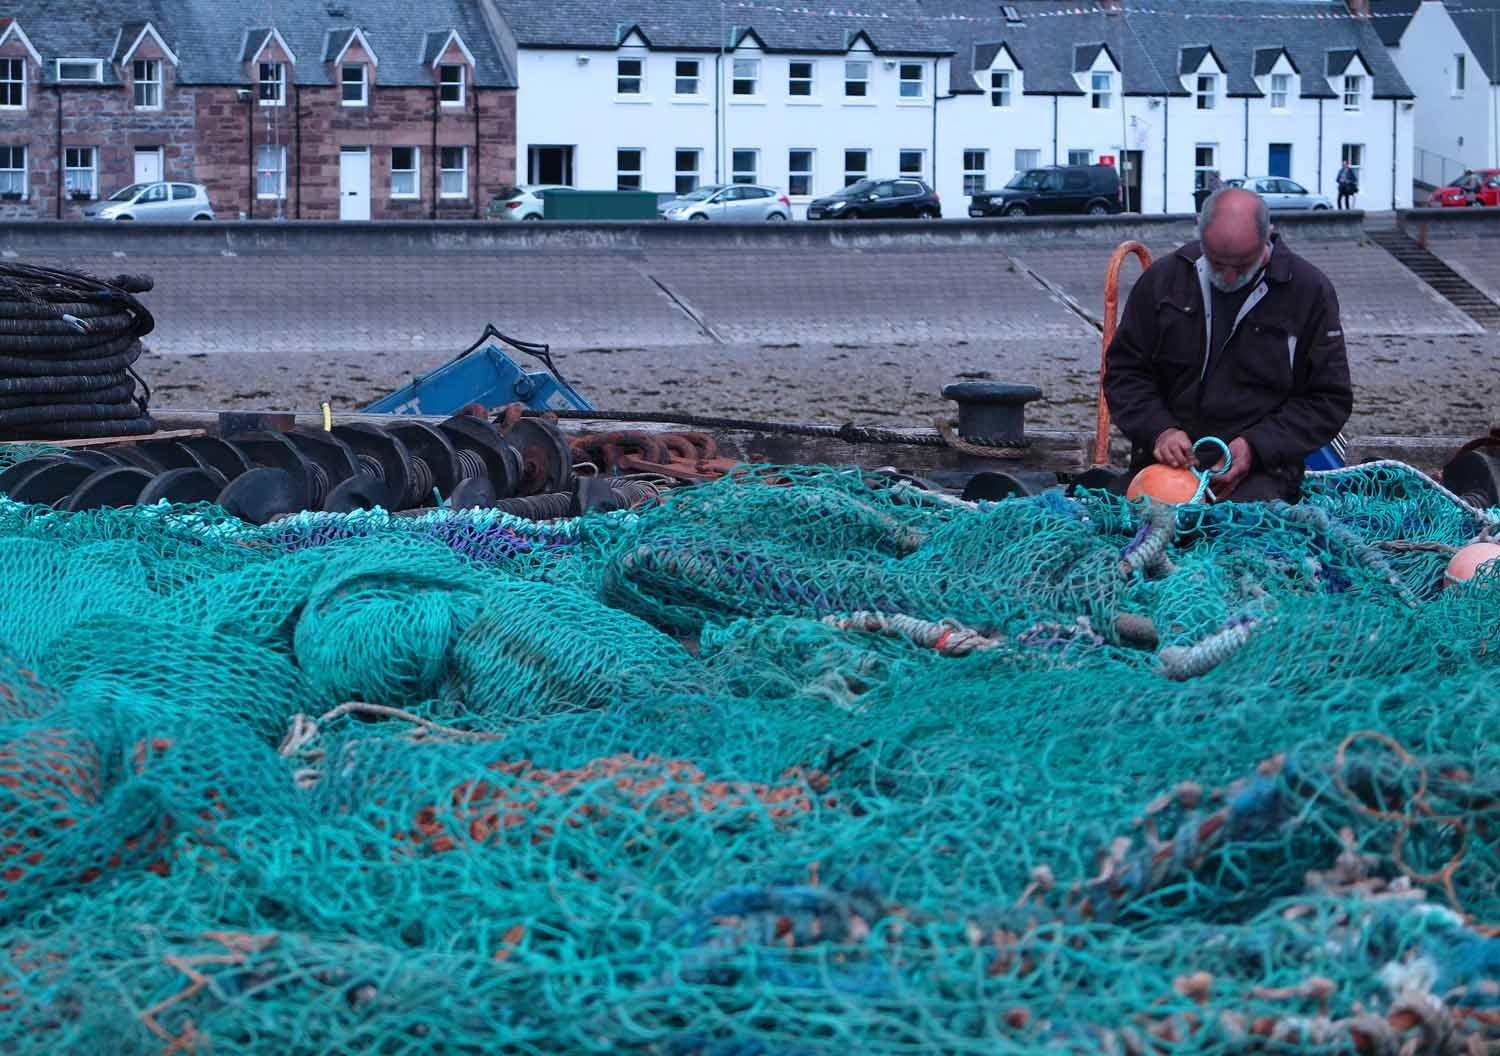 Scotland-Highlands-Ullapool-Fisherman